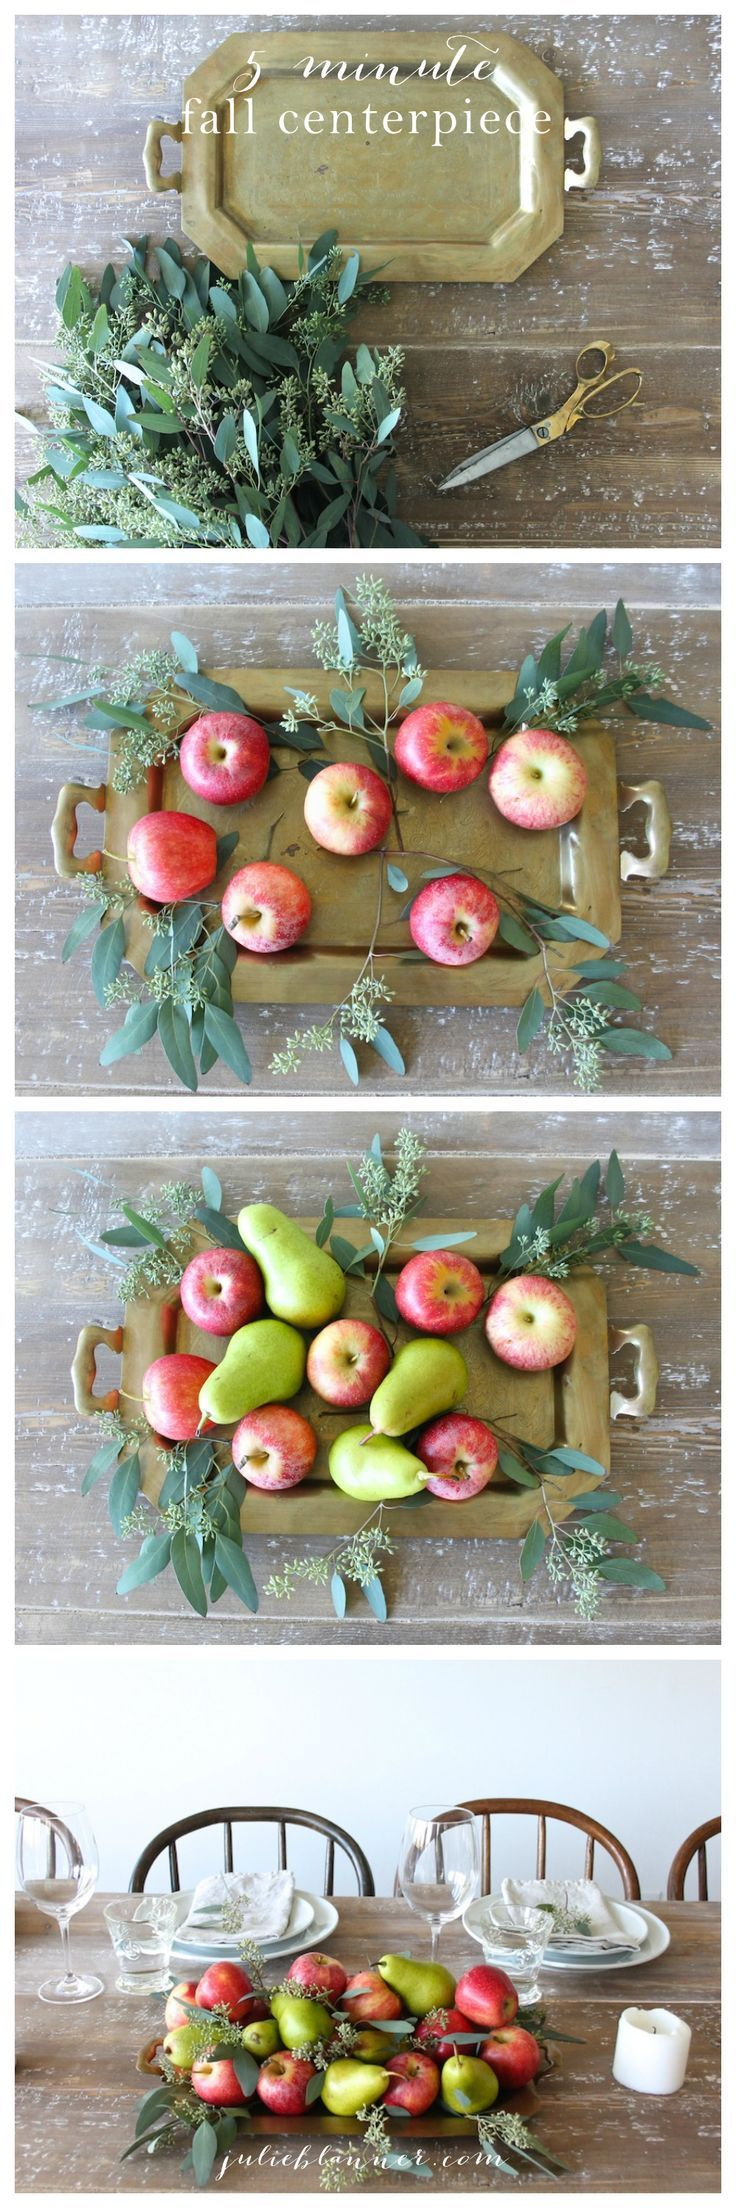 A minute fall centerpiece tutorial colorful edible